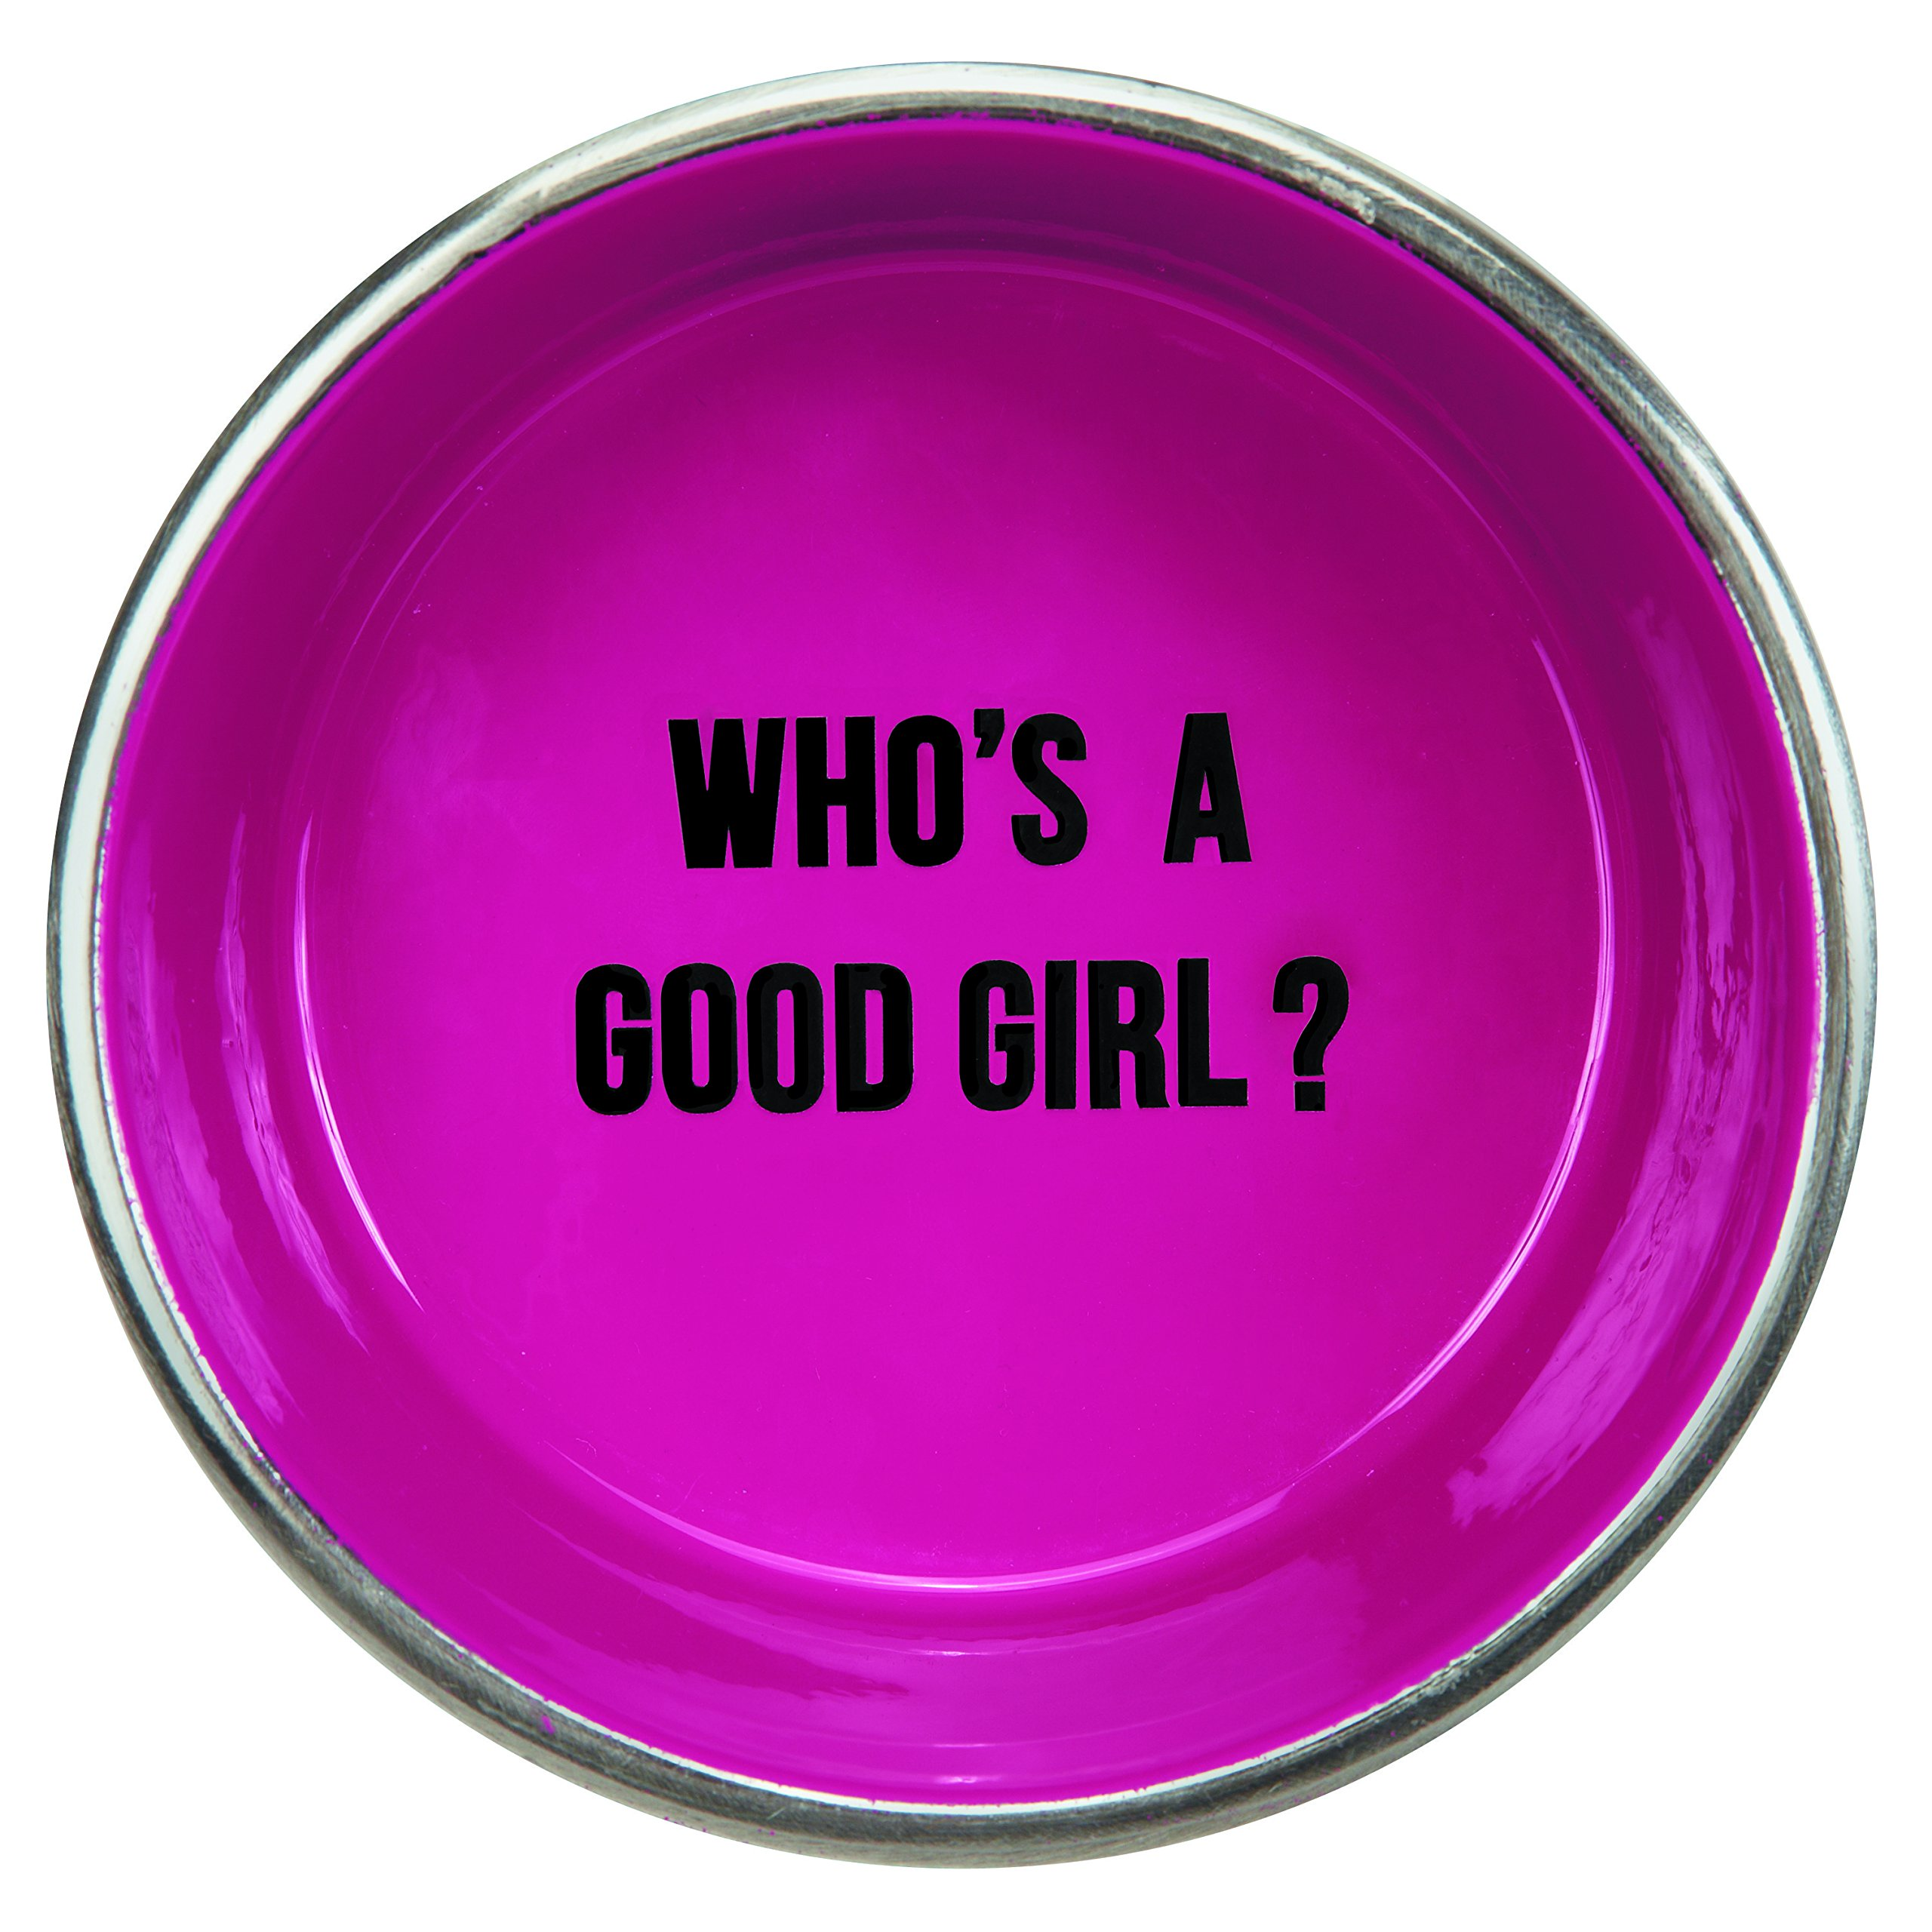 Proselect Chitchat Stainless Steel Dog Bowl, Pink, 64 oz